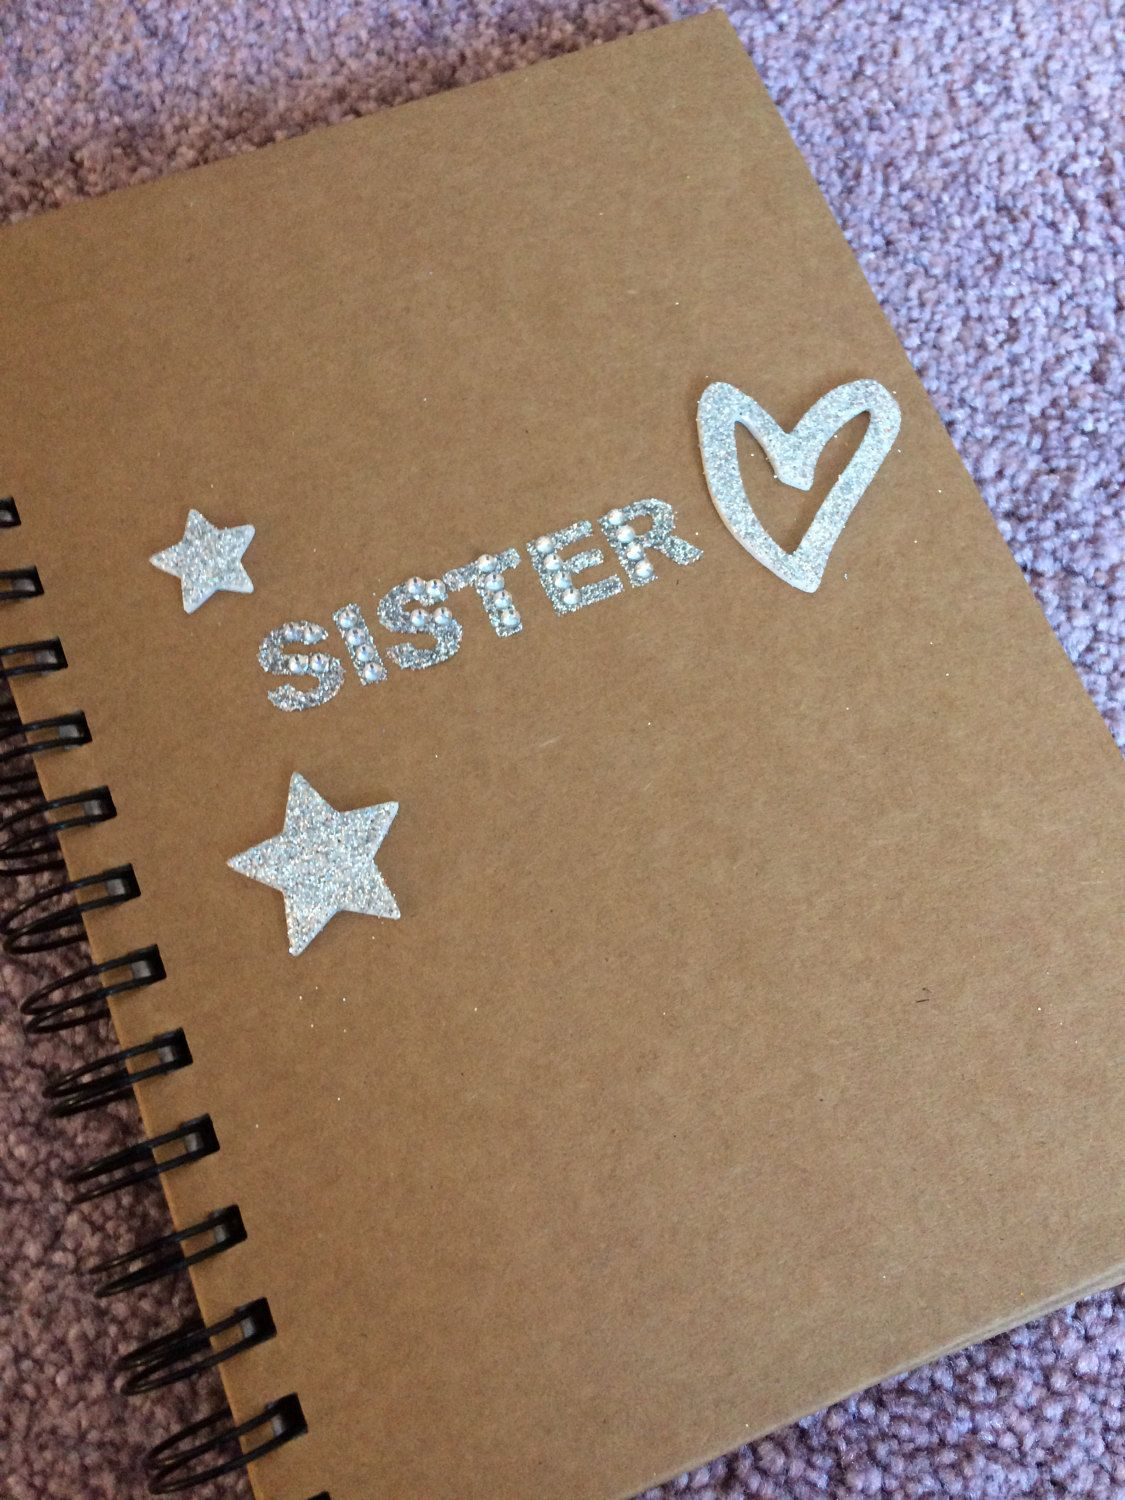 Note Book Brown Lined Paper A5 Daughter School Collage Sister Gift Christmas Writing Handmade Glitter Gold By Loveartsgifts On Etsy